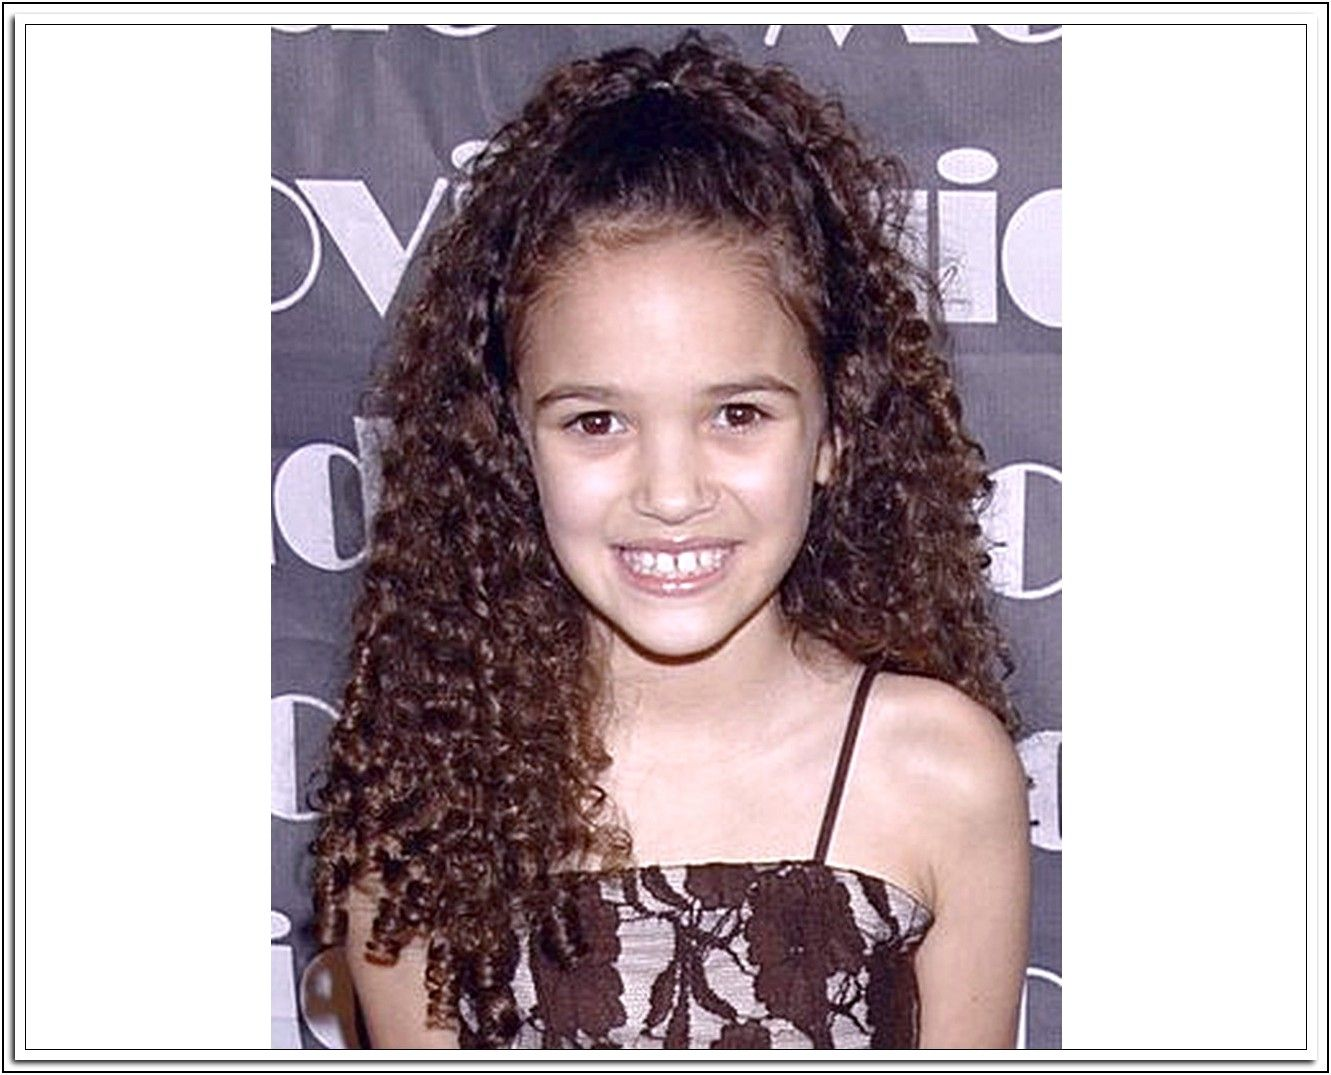 Hairstyles for curly hair tweens hairstyles for curly hair